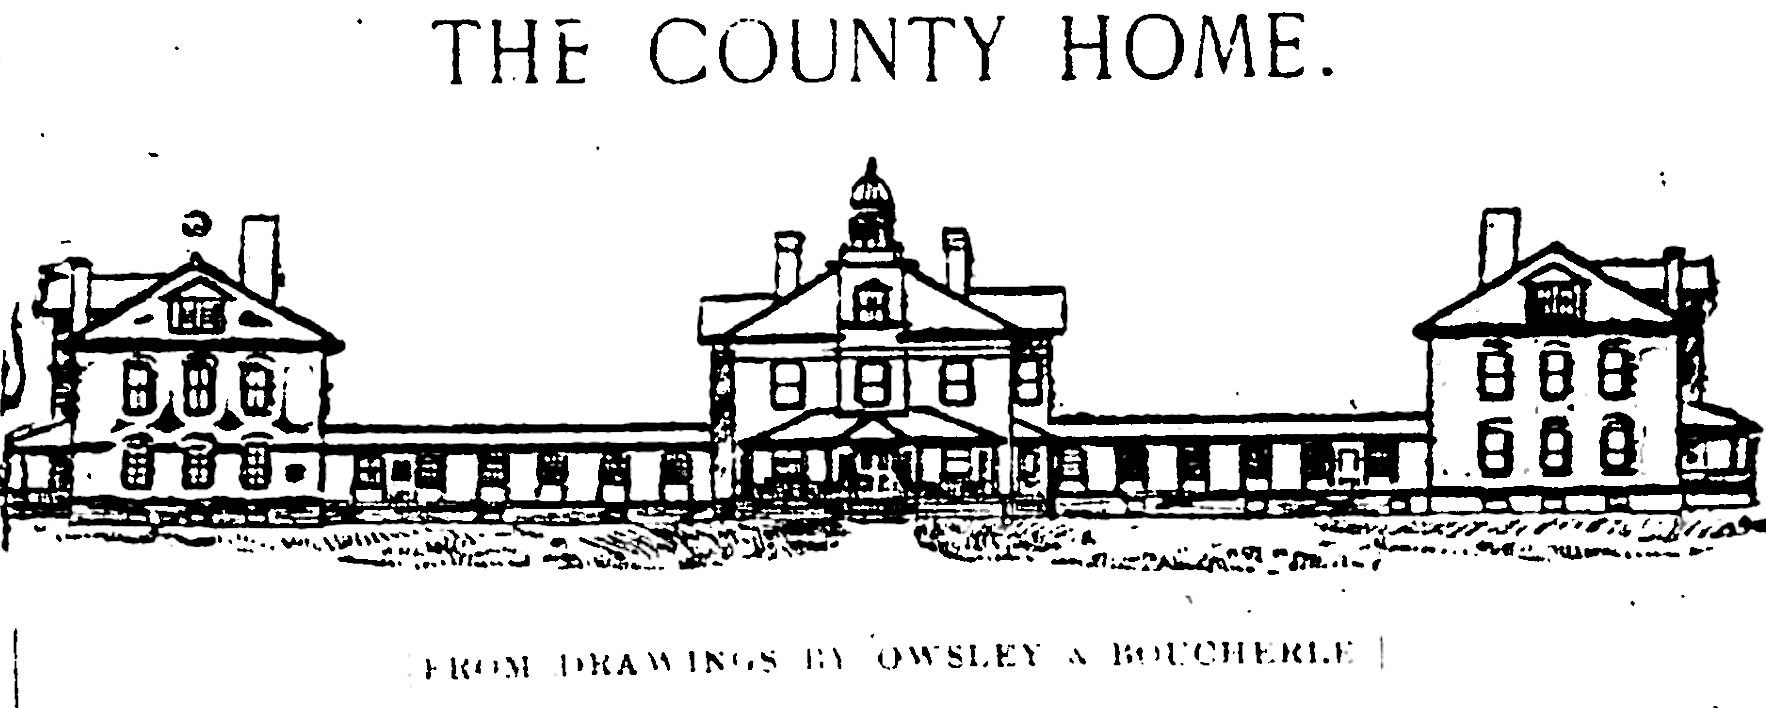 Depiction of the new Poor Farm house in 1899 newspaper